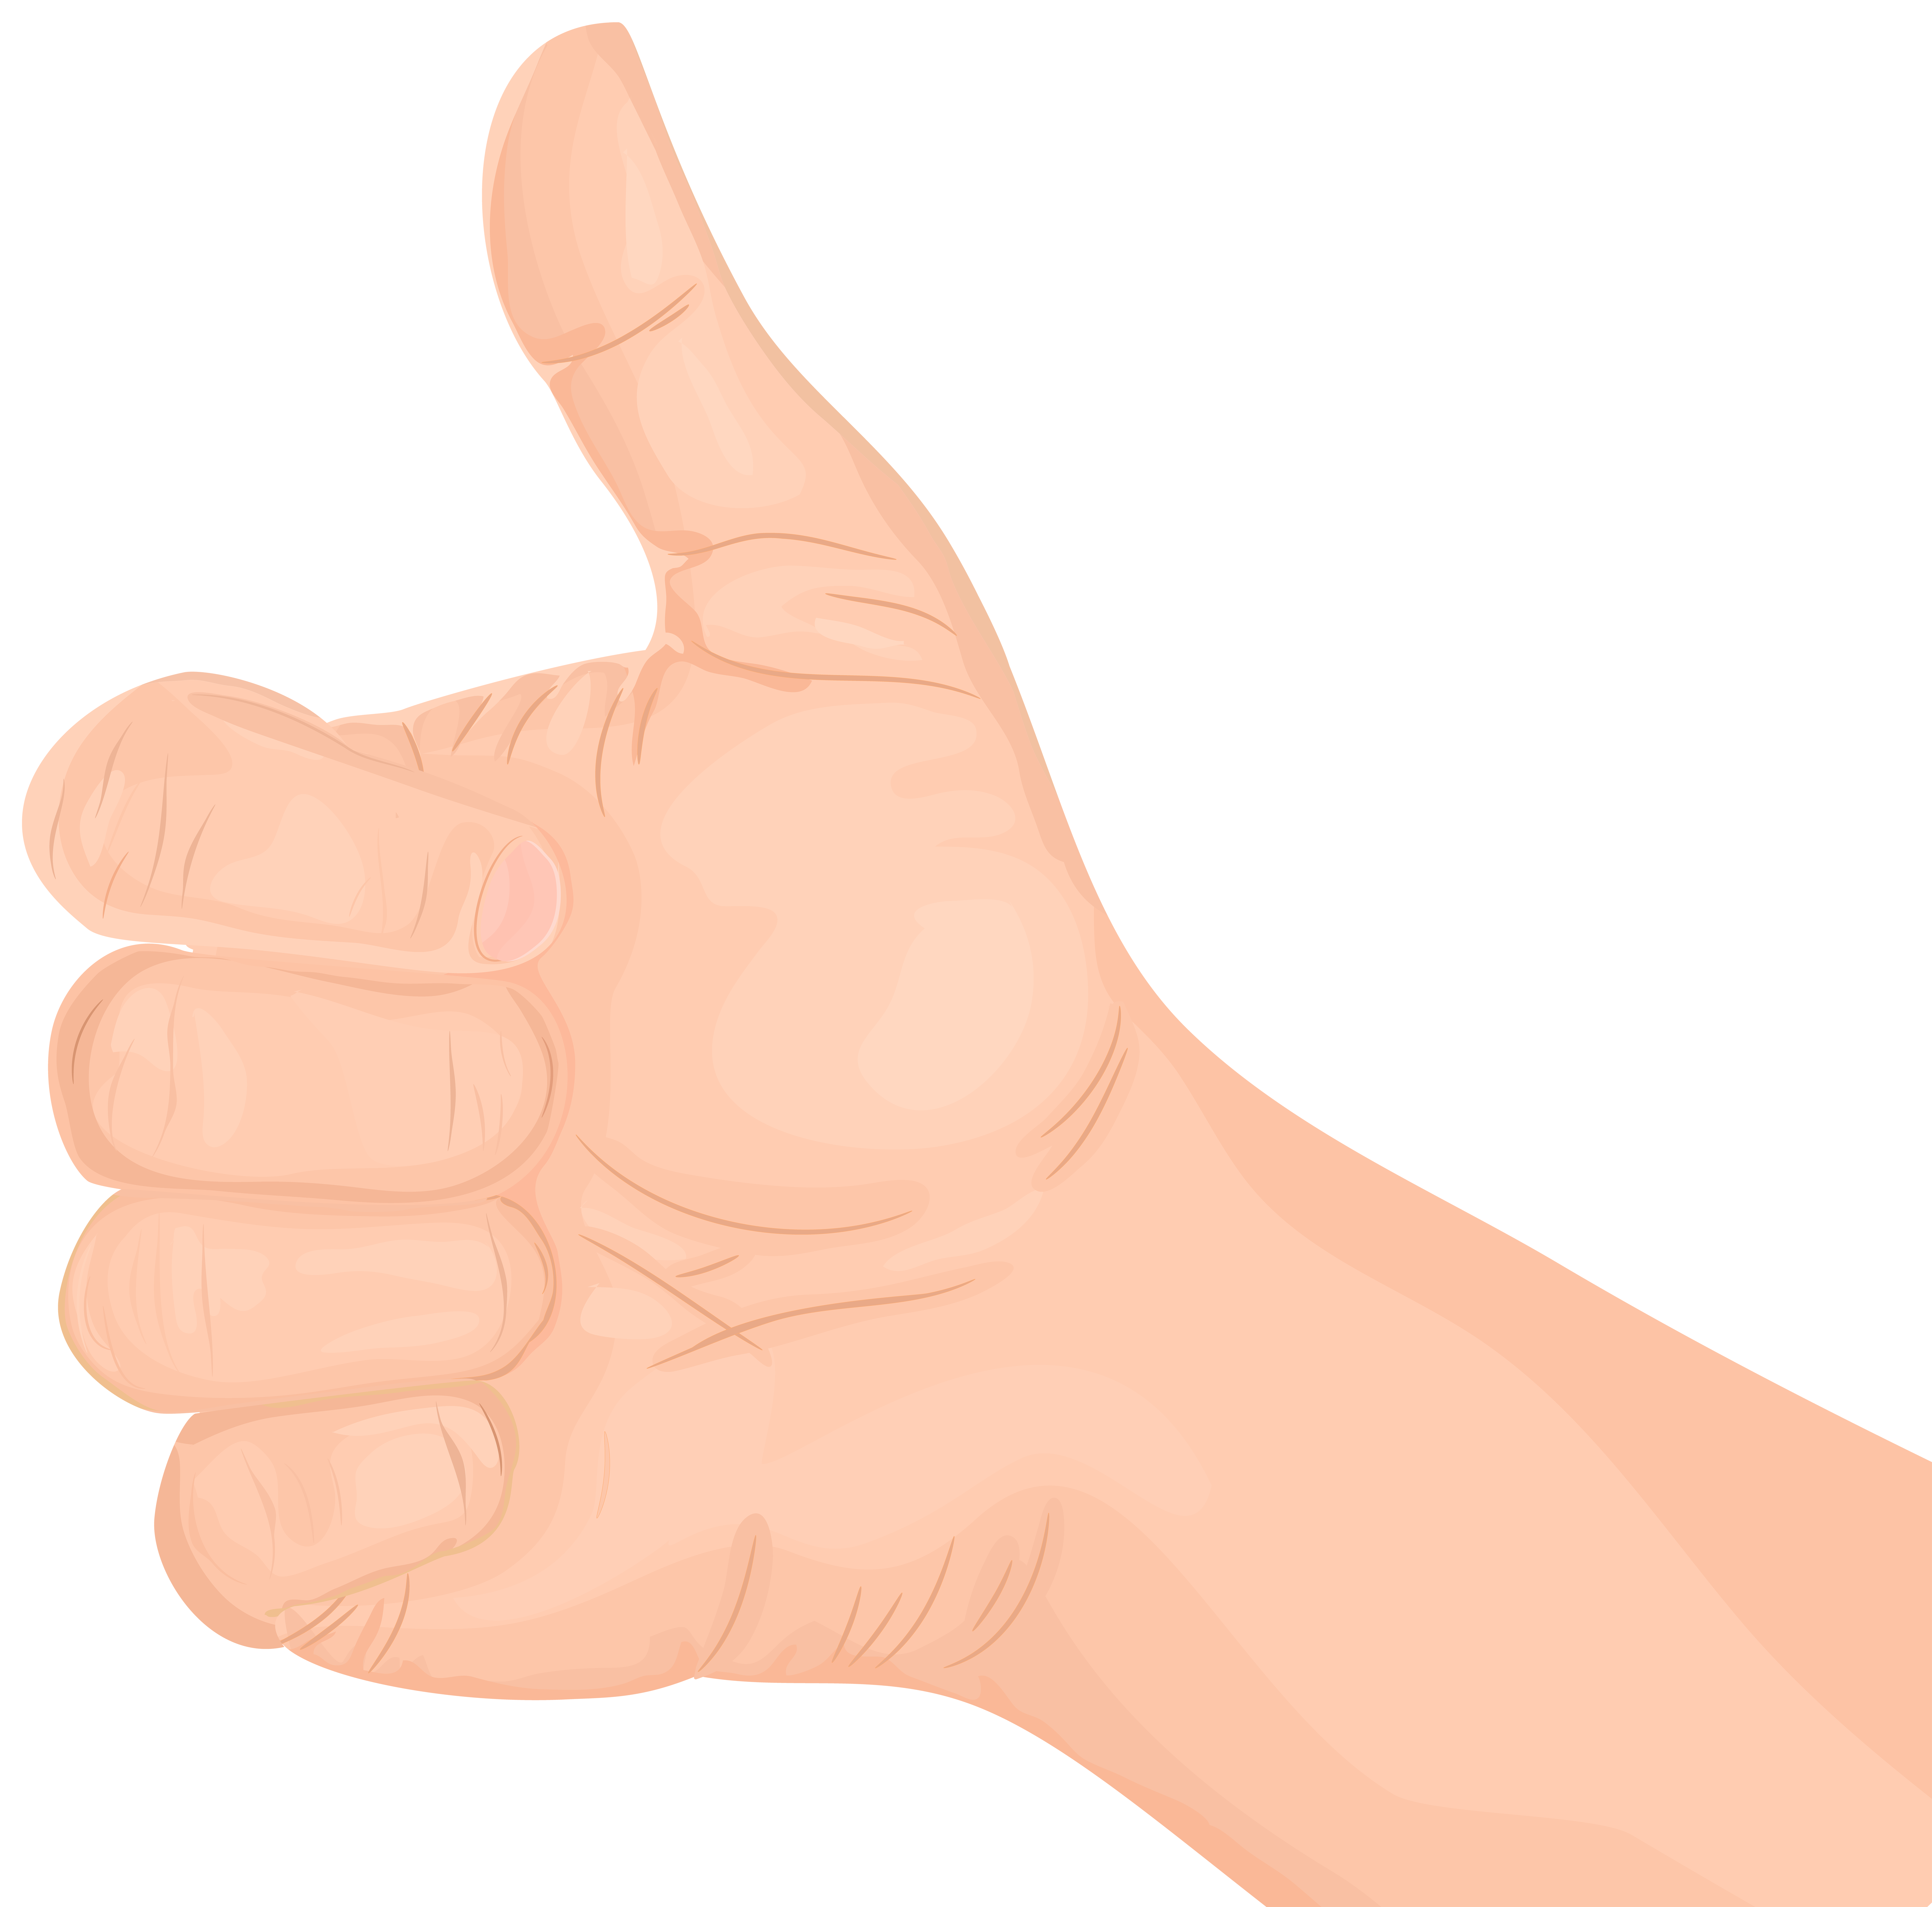 Thumbs Up Hand Gesture Transparent PNG Clip Art | Gallery ... vector free stock